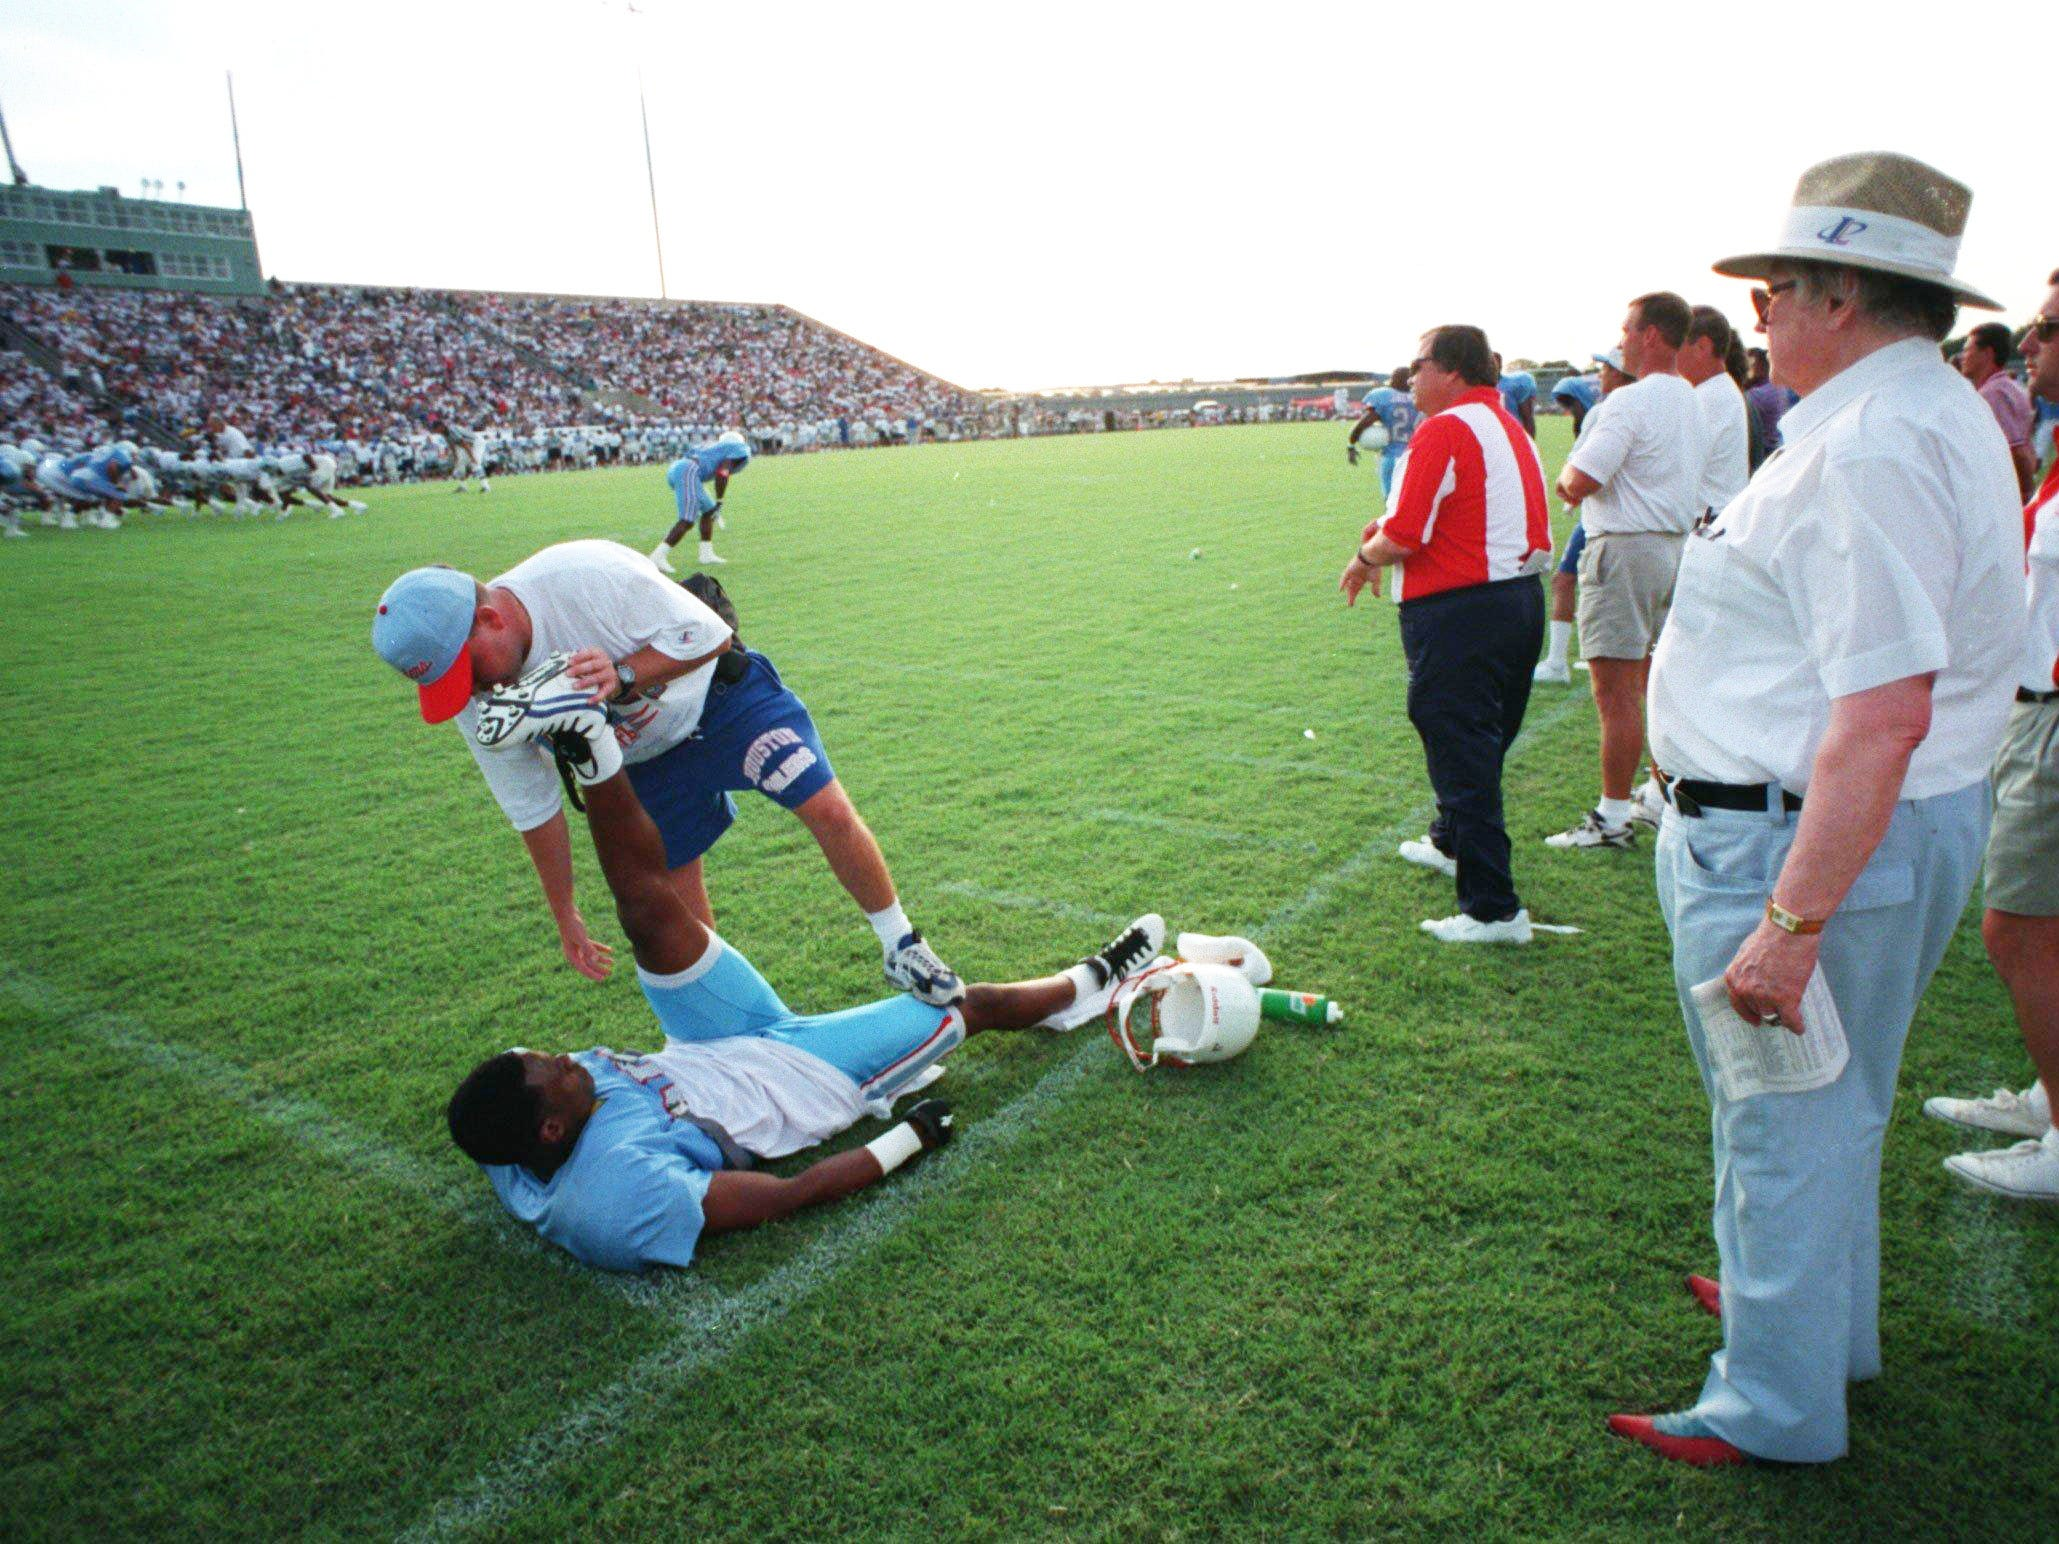 Houston Oilers owner Bud Adams, right, watching the scrimmage against the Dallas Cowboys in Austin, Texas July 24, 1996.